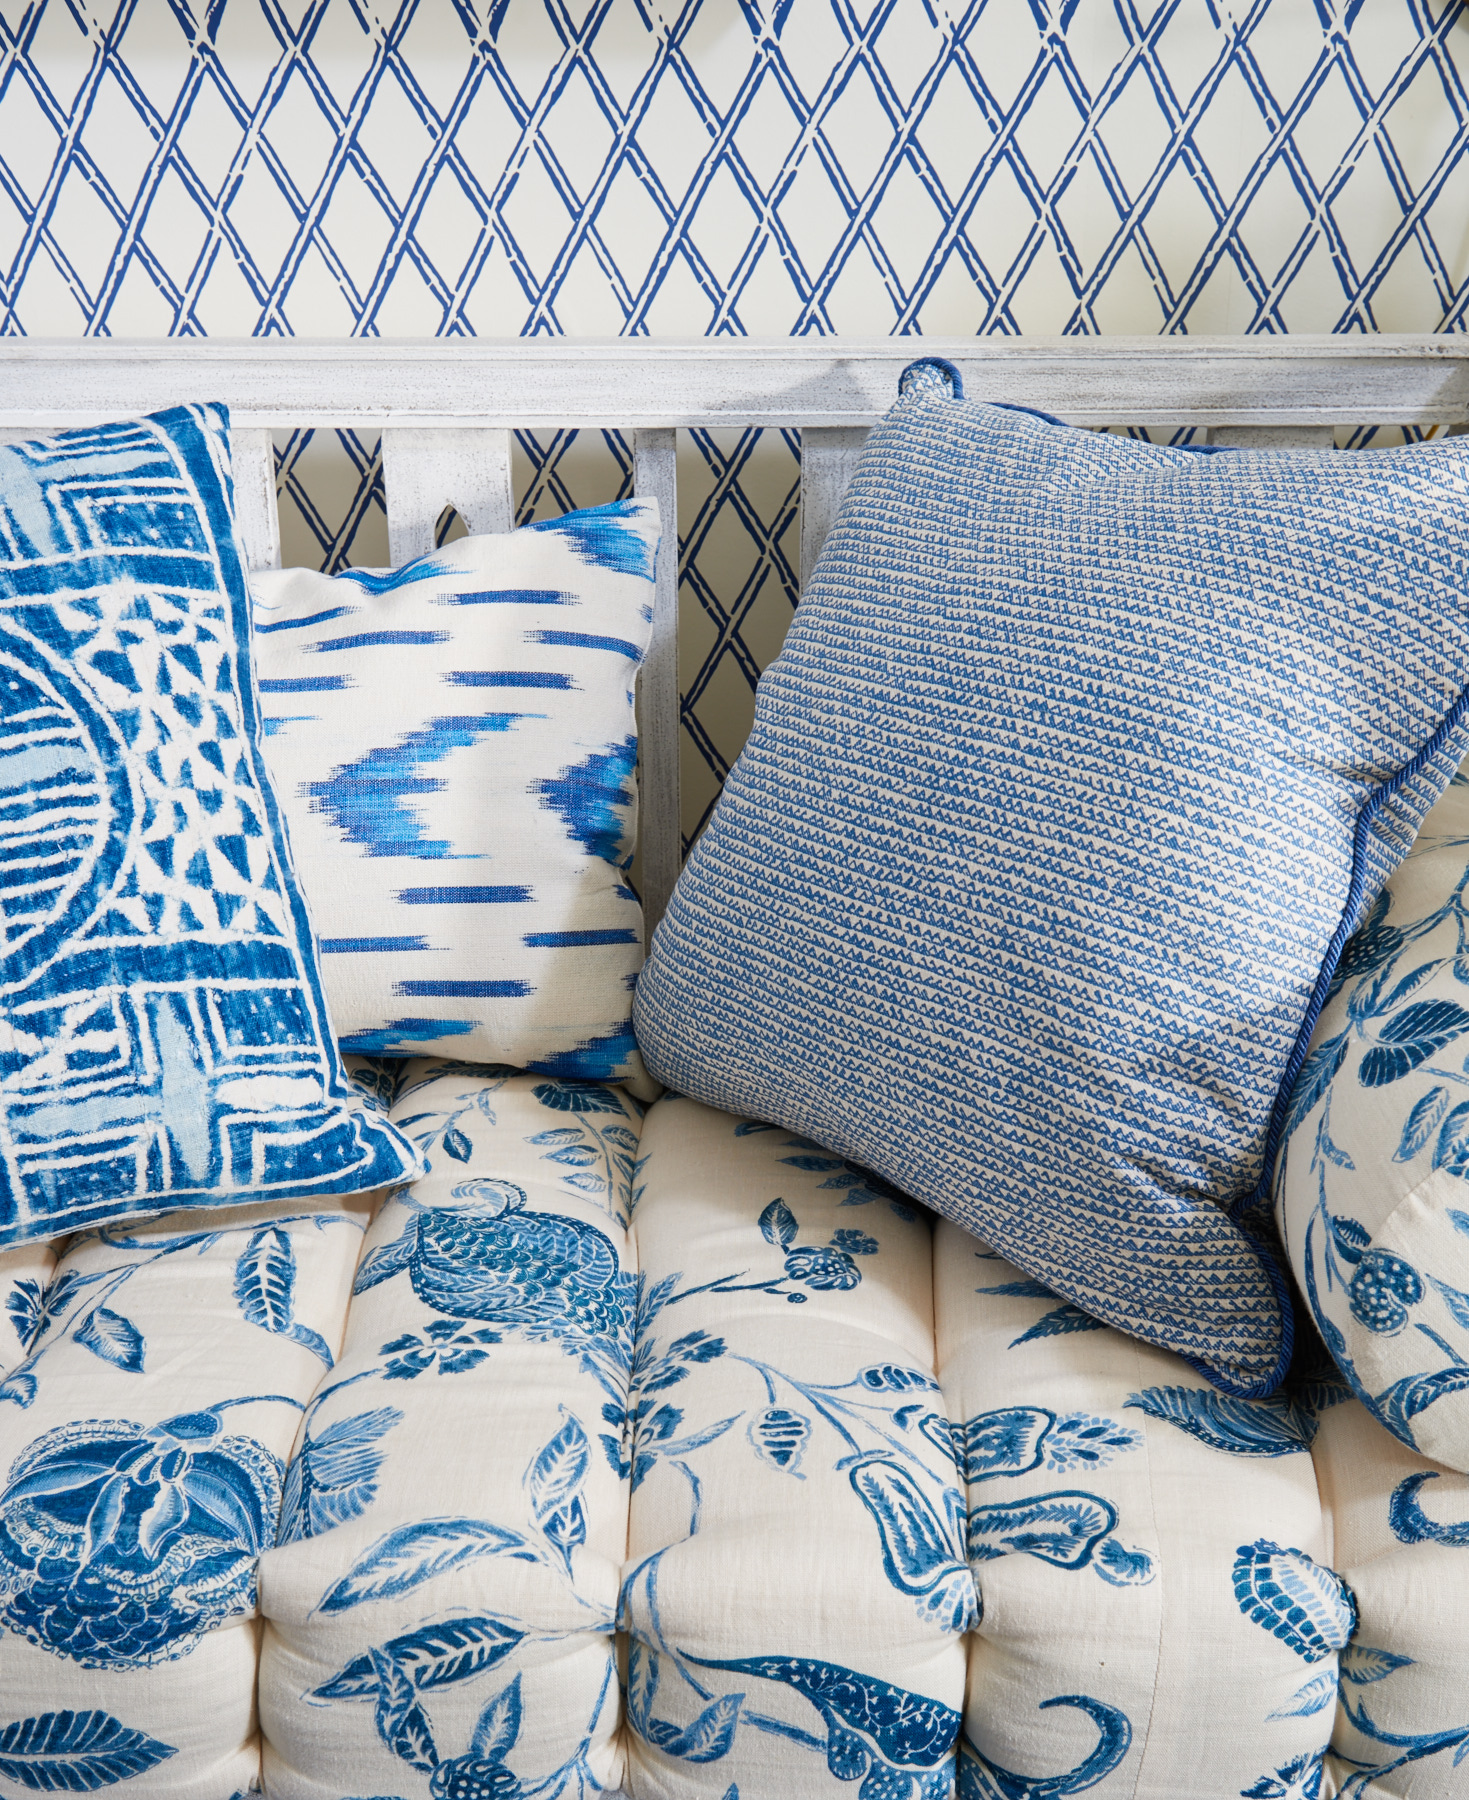 Quilted blue textiles